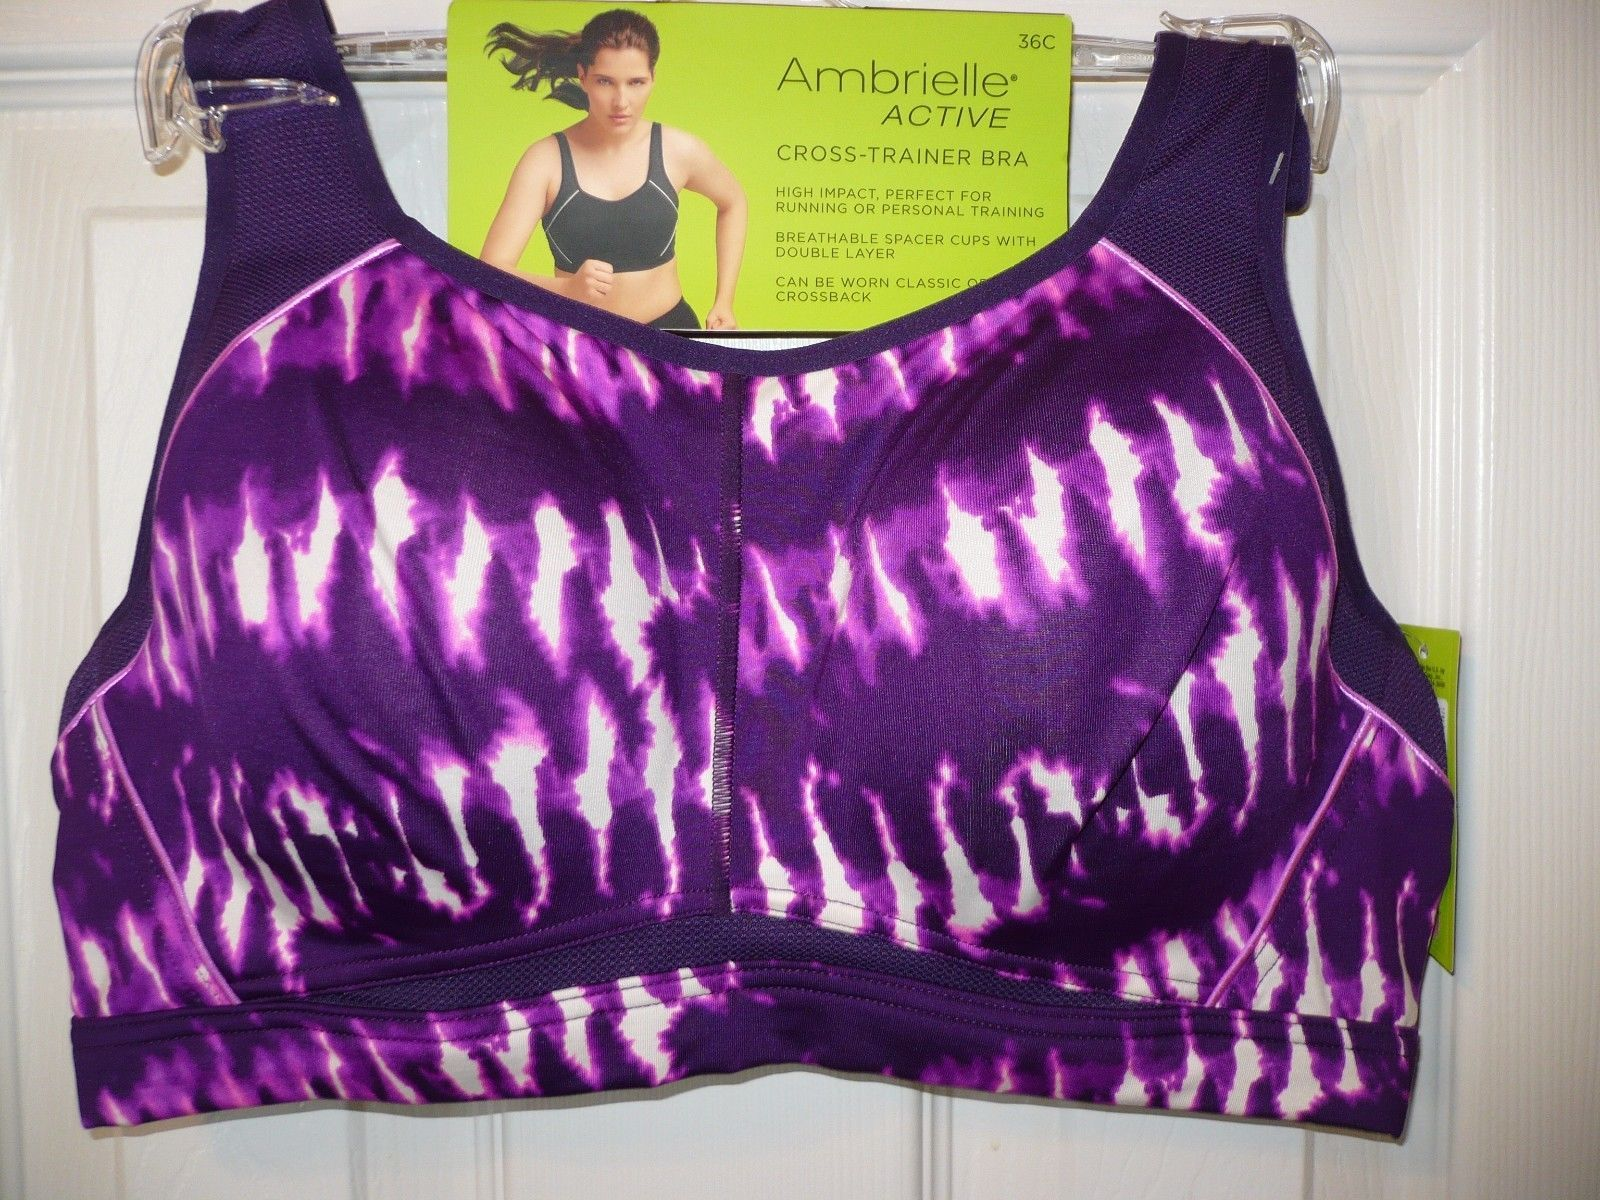 c08296120f Ambrielle Active Cross Trainer Bra Size 36C and 50 similar items. 57